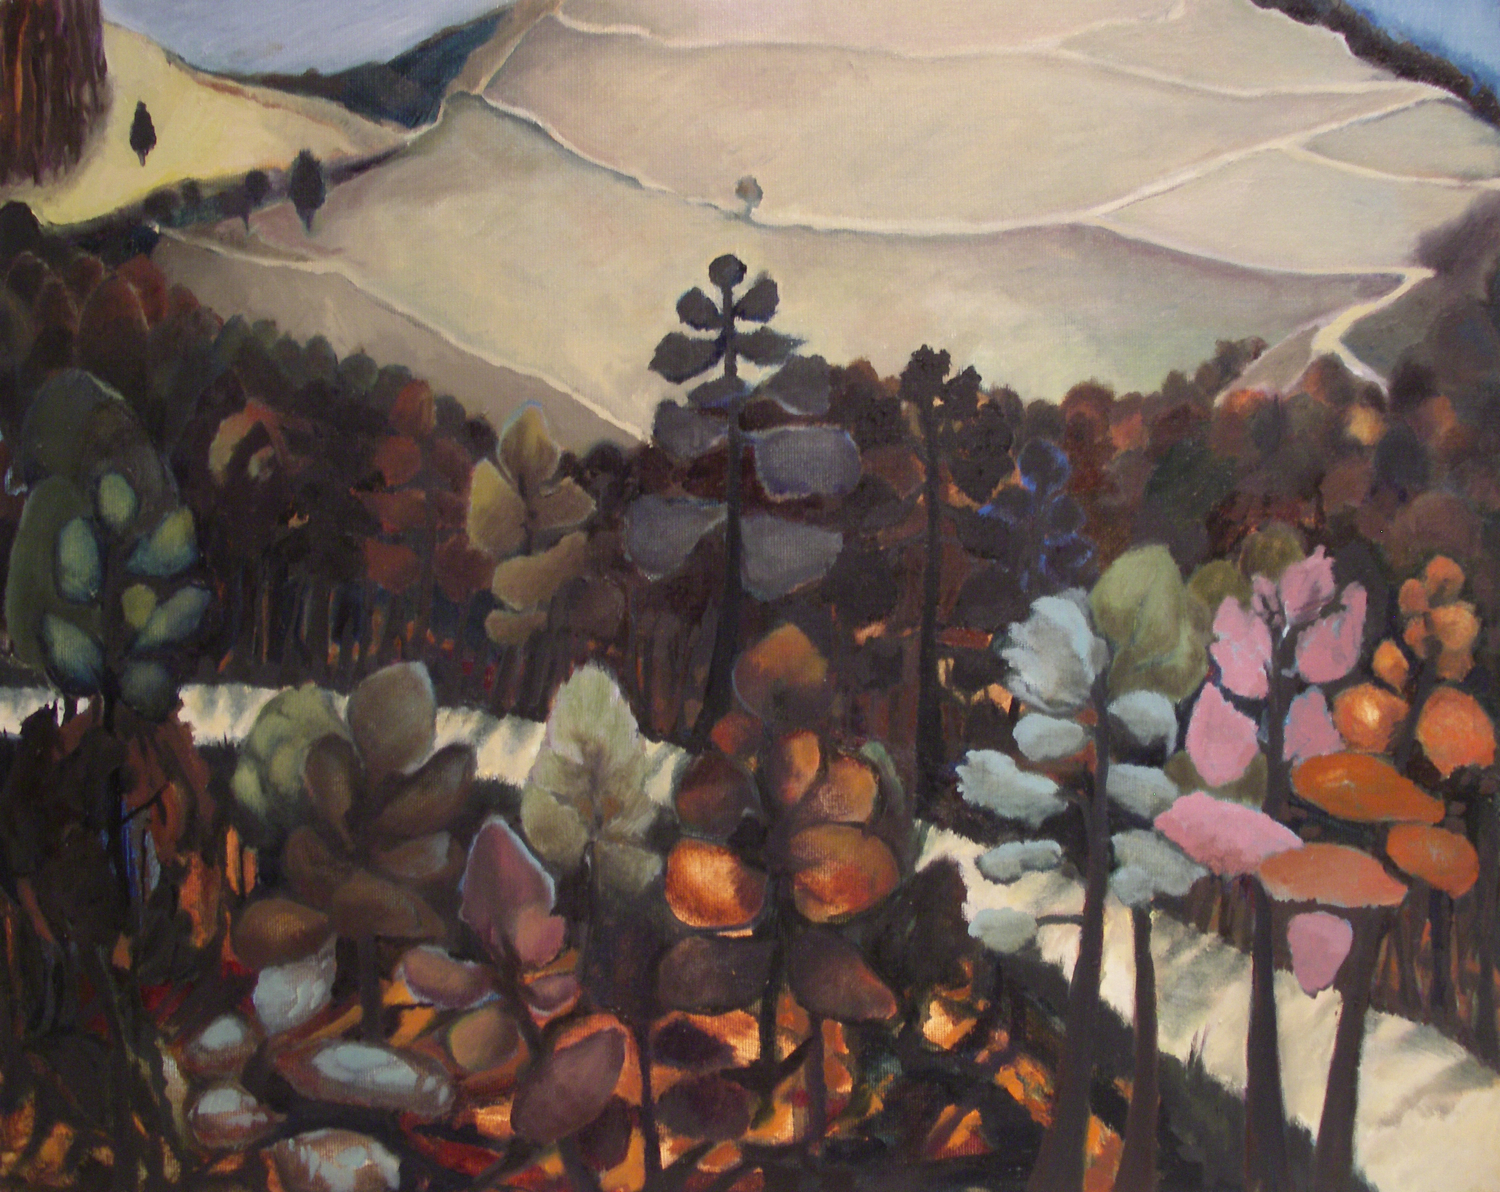 Cévennes Mountain Pass [51x 41cm] oil on board 2012 Laura Hudson.jpg